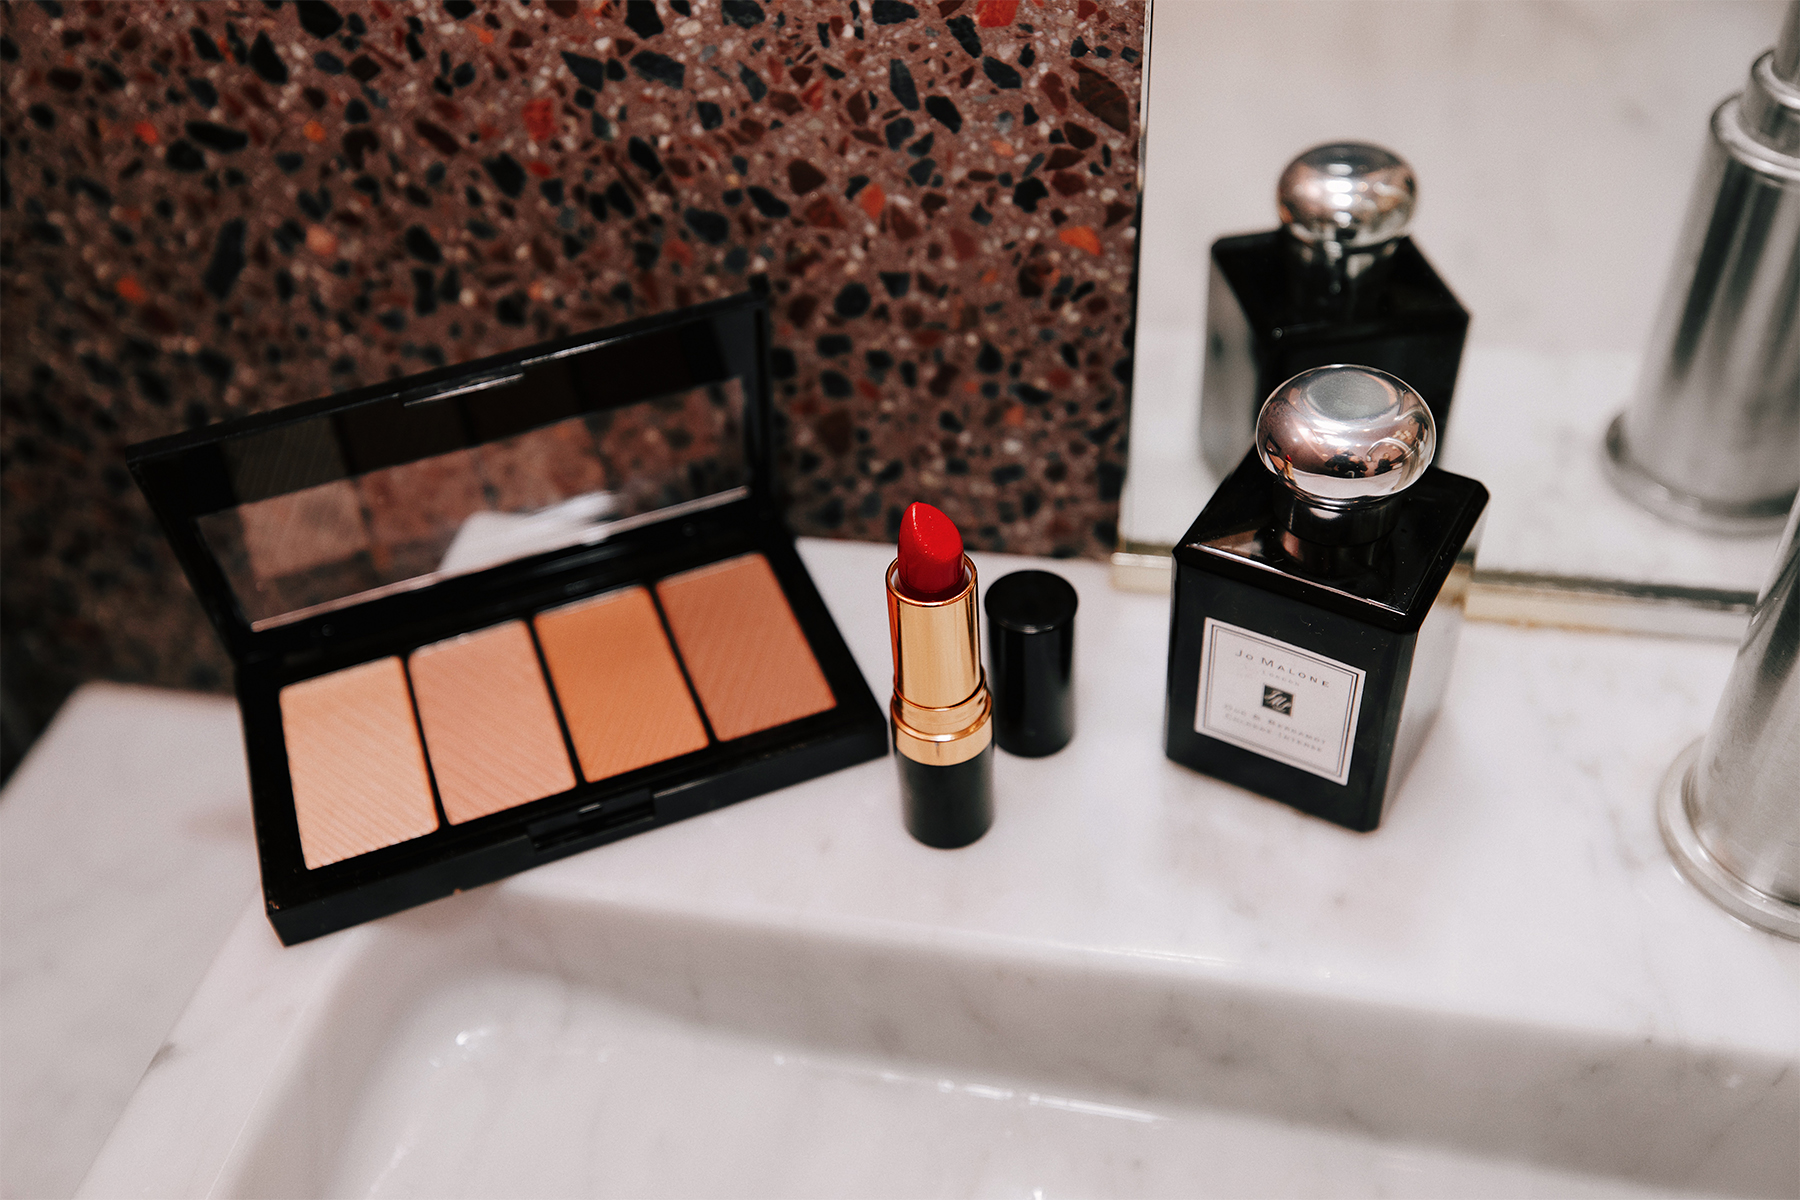 Fashion Jackson Walmart Holiday Beauty Bronzer Red Lipstick Jo Malone Cologne